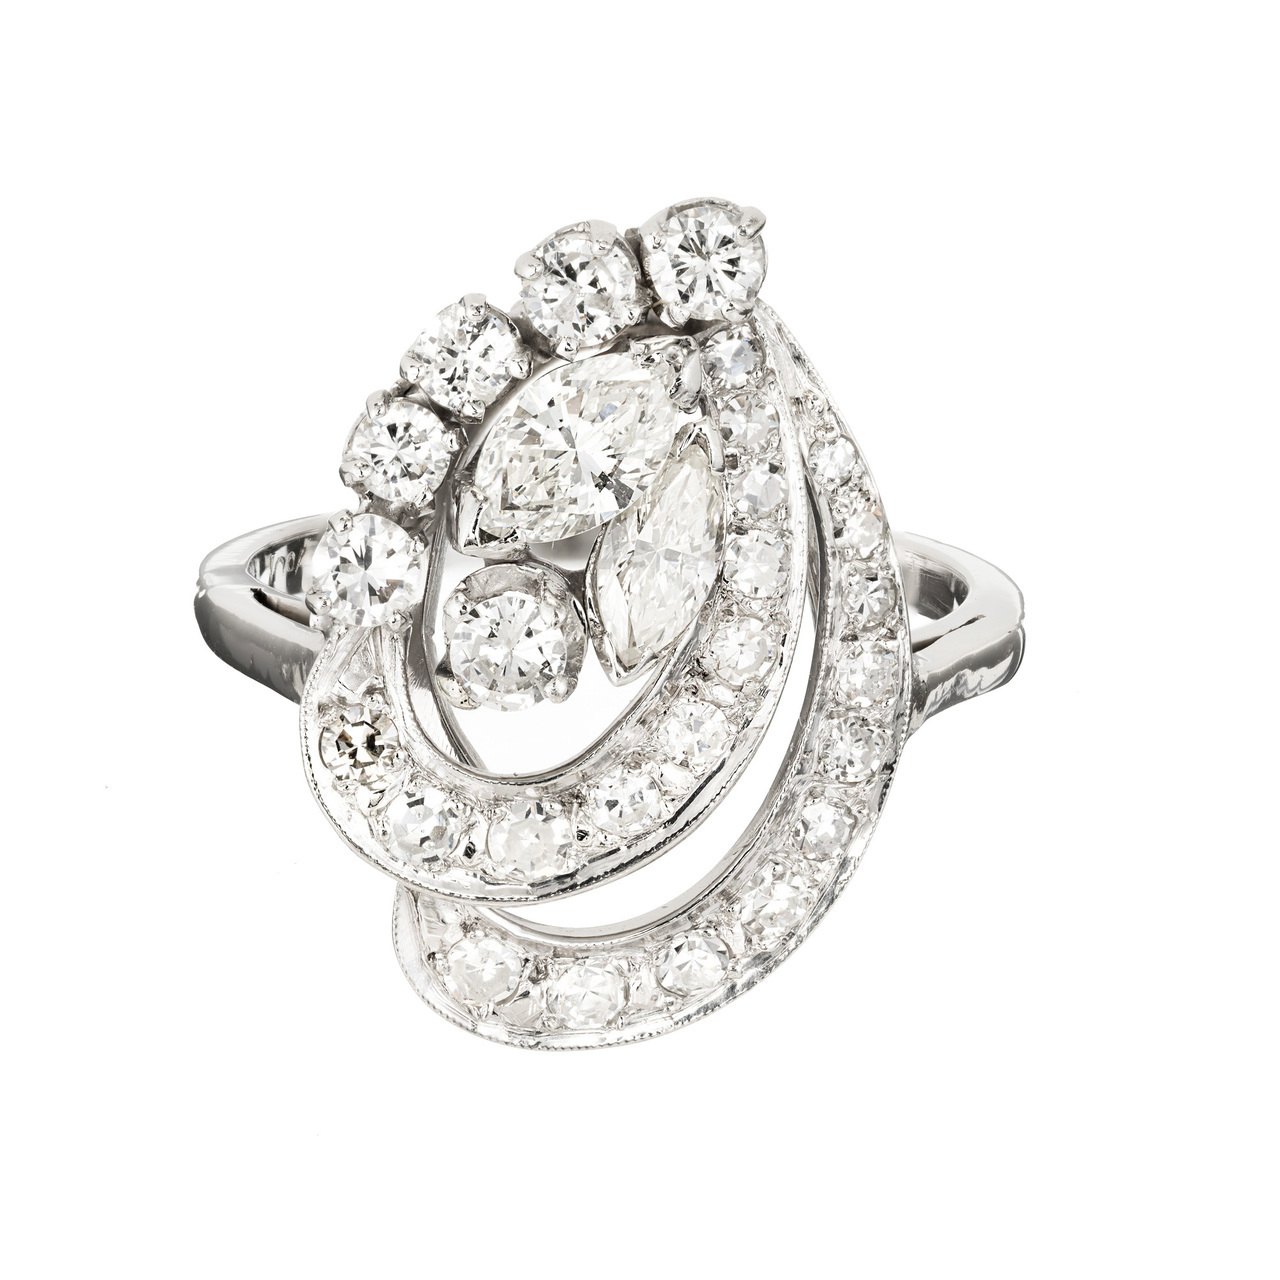 White Gold Jewelry Styles to Wear